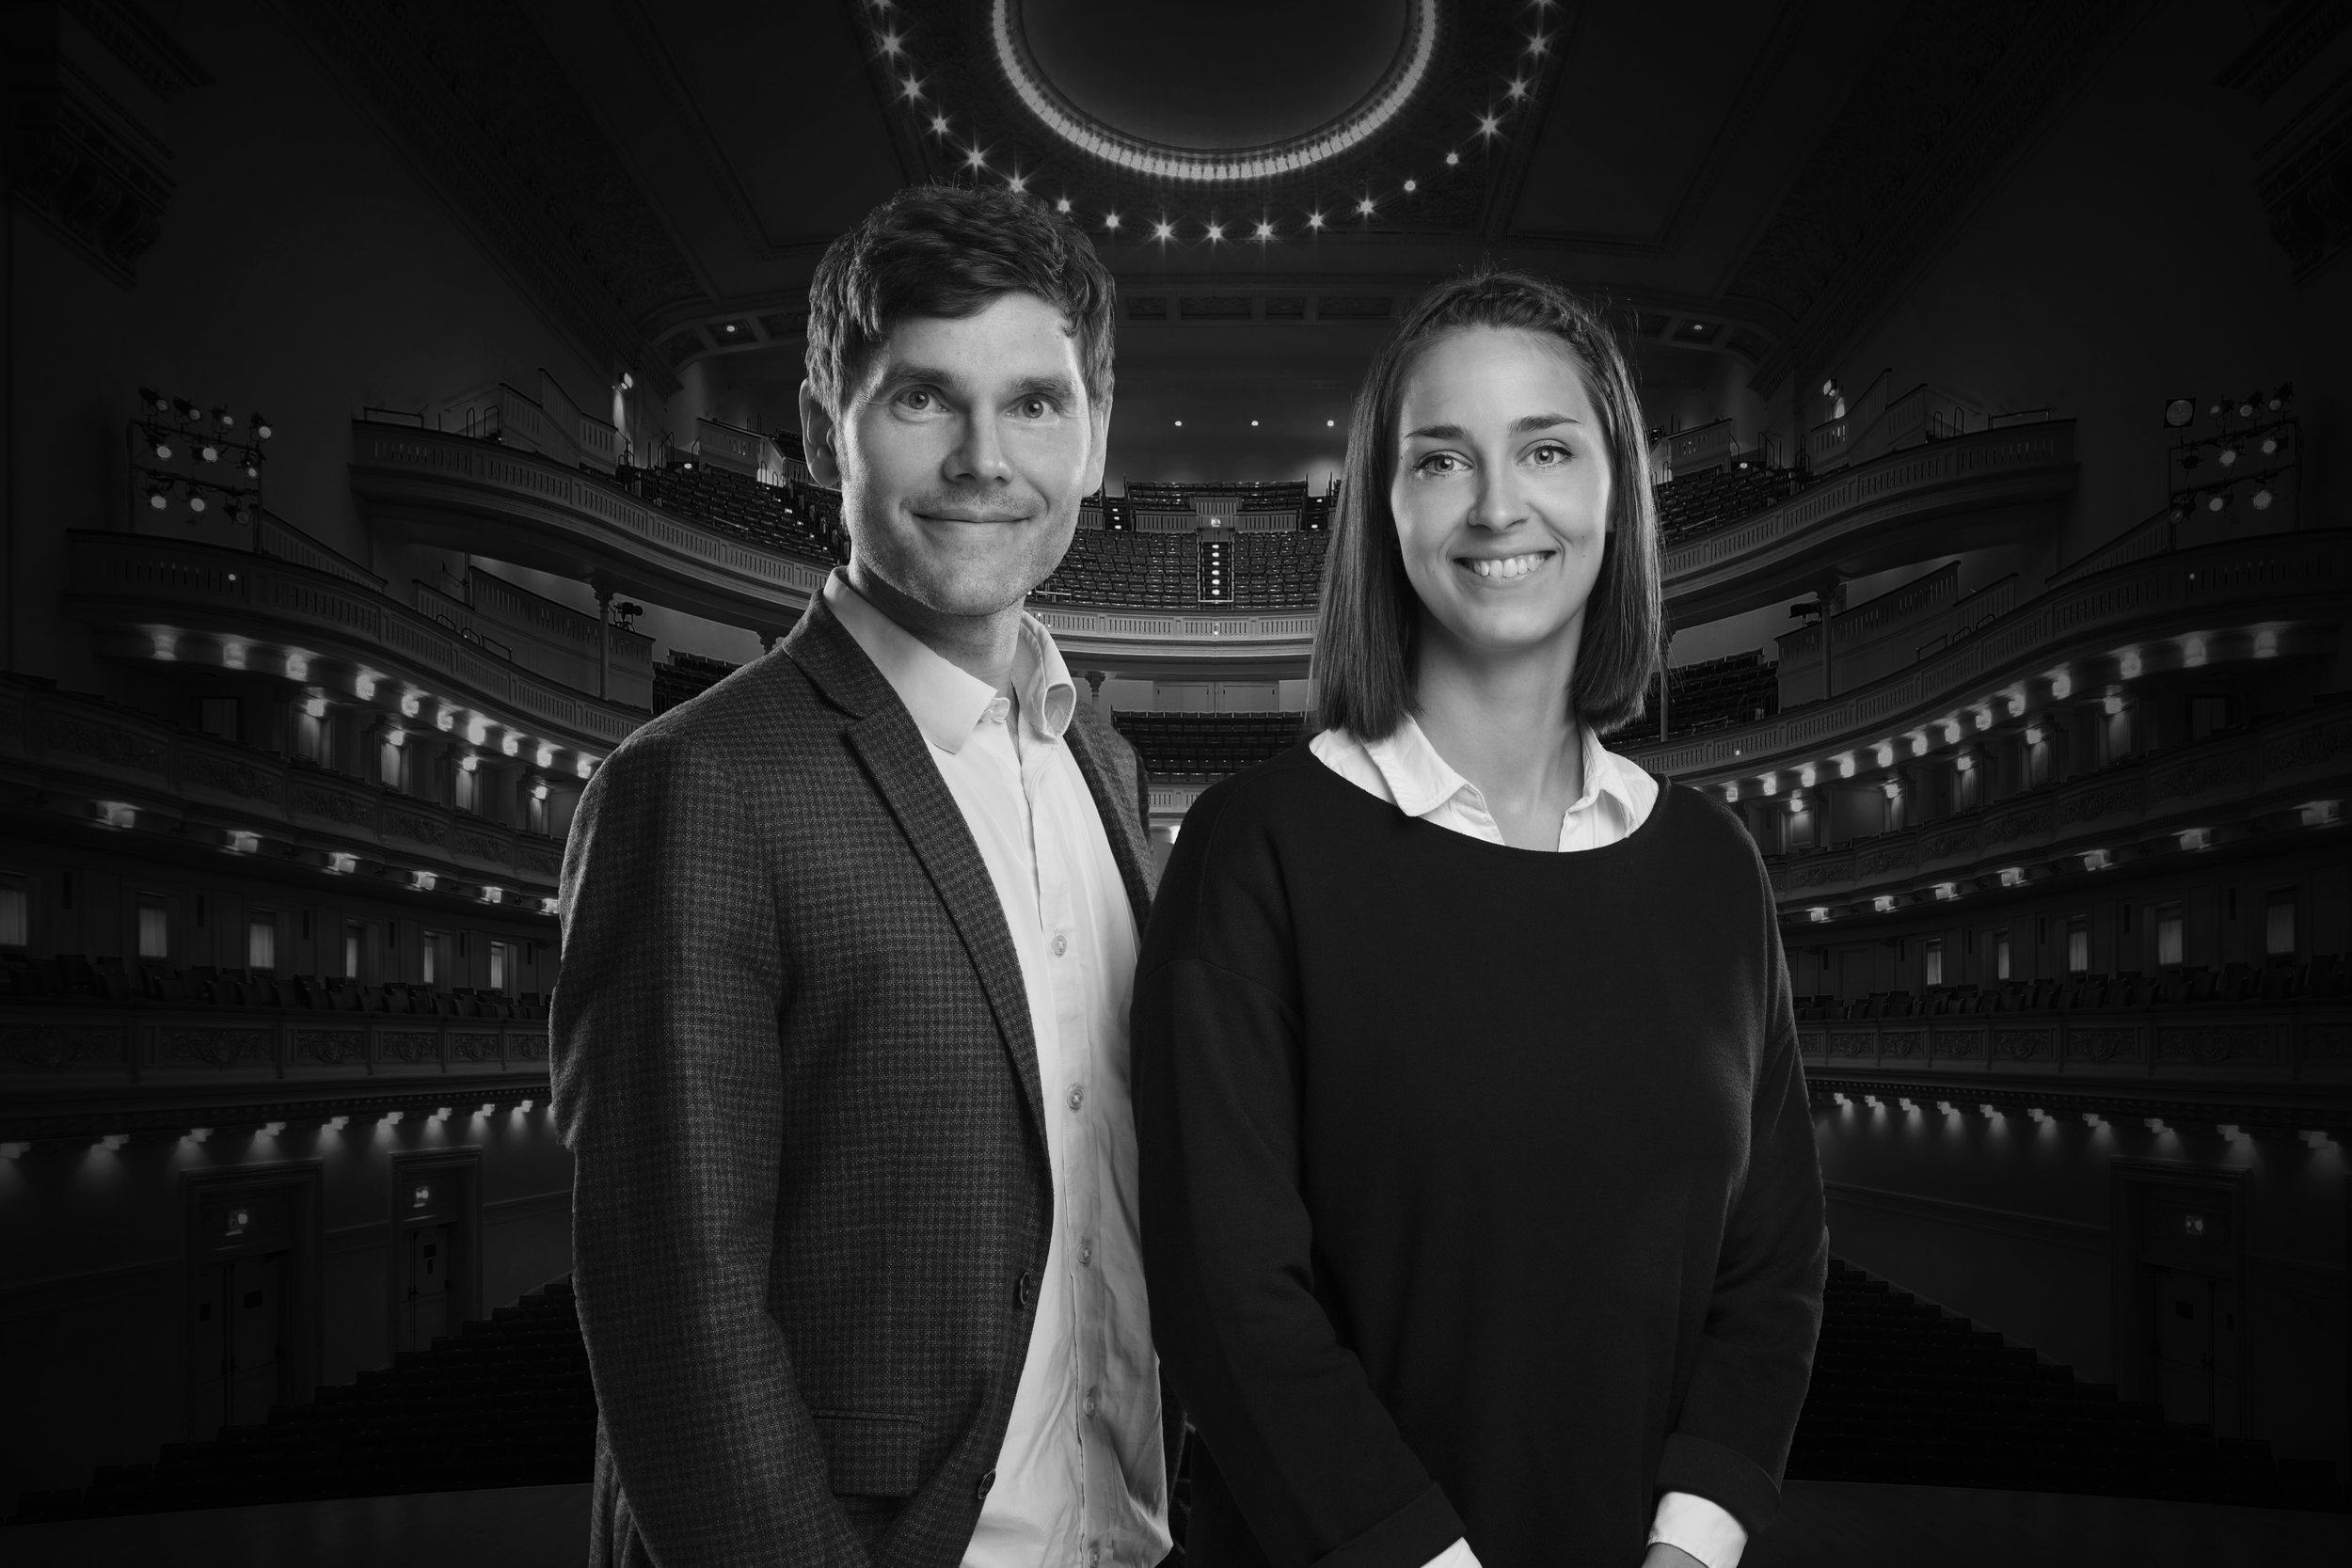 Founders of Opera.fo: Annfinnur Heinesen, stage director and Birita Adela Davidsen, coloratura soprano and project manager.